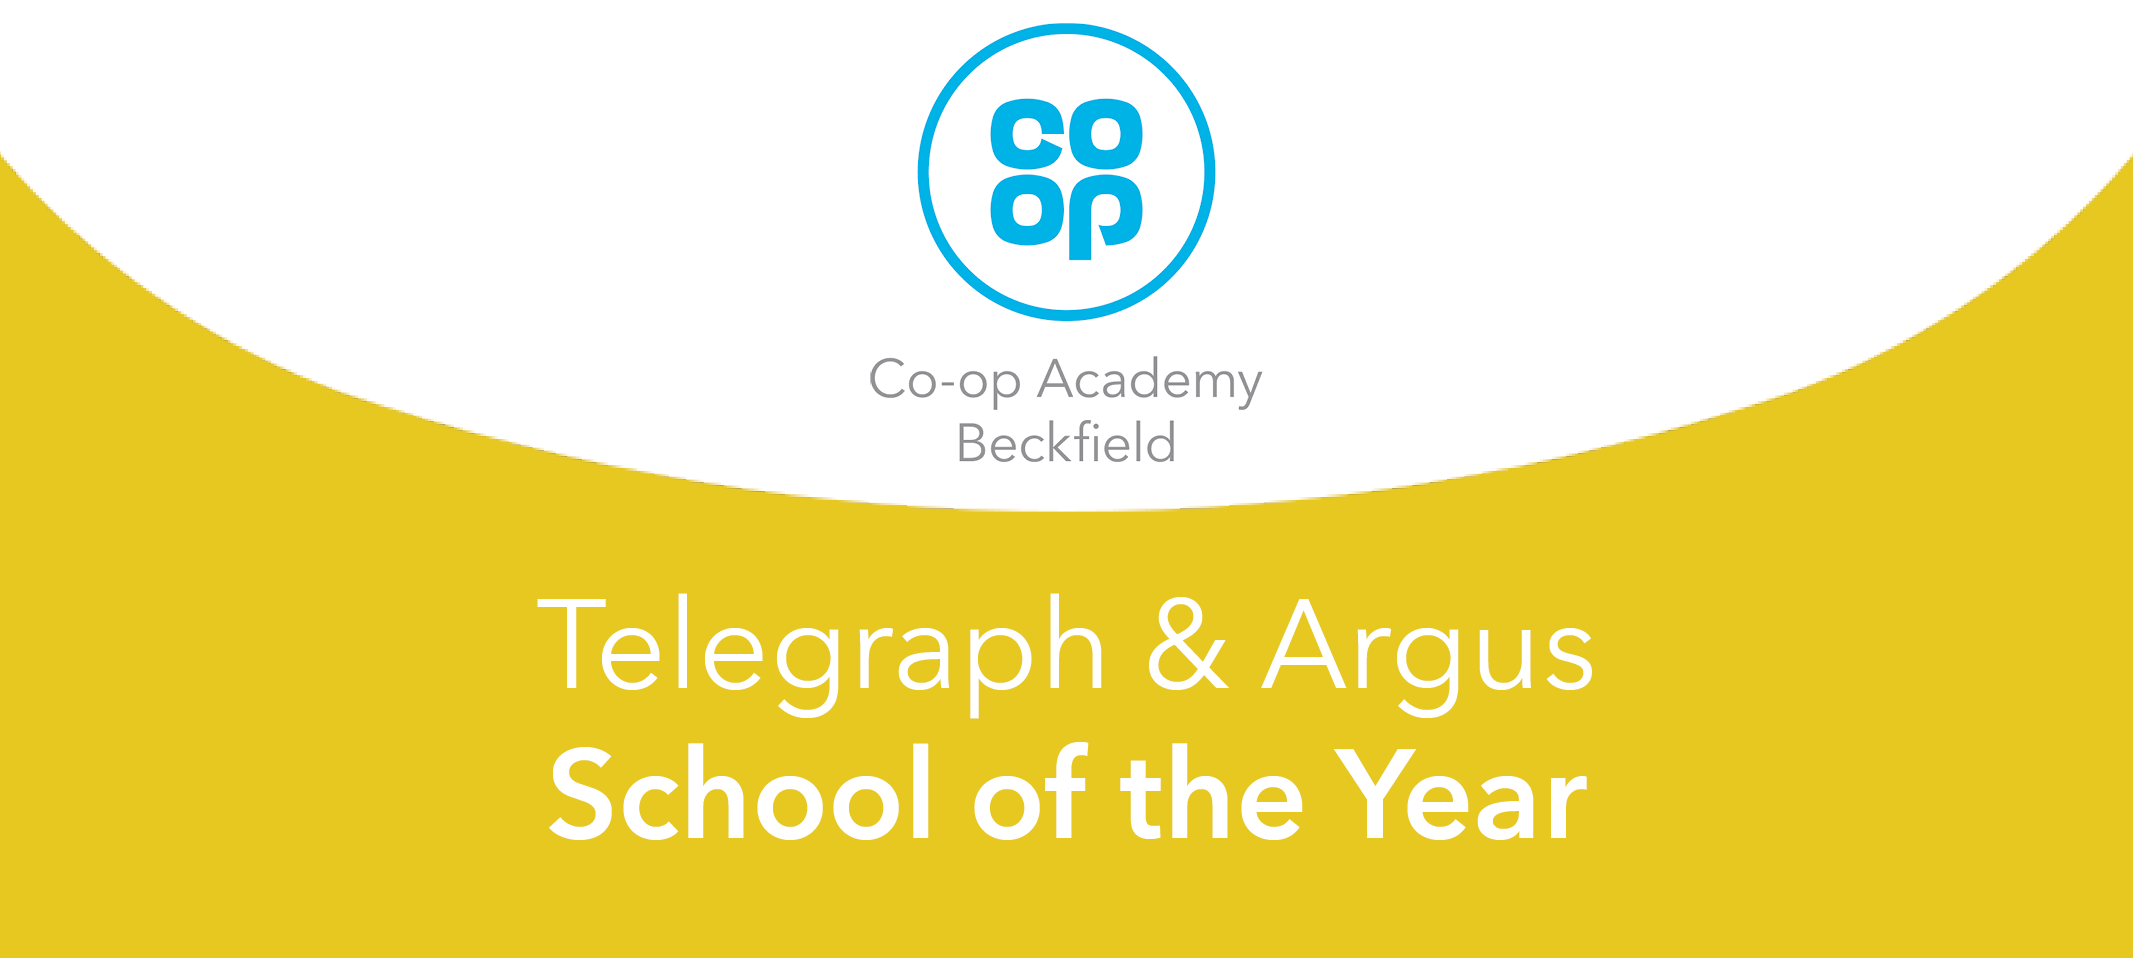 Co-op Academy Beckfield are Telegraph & Argus School of the Year 2021